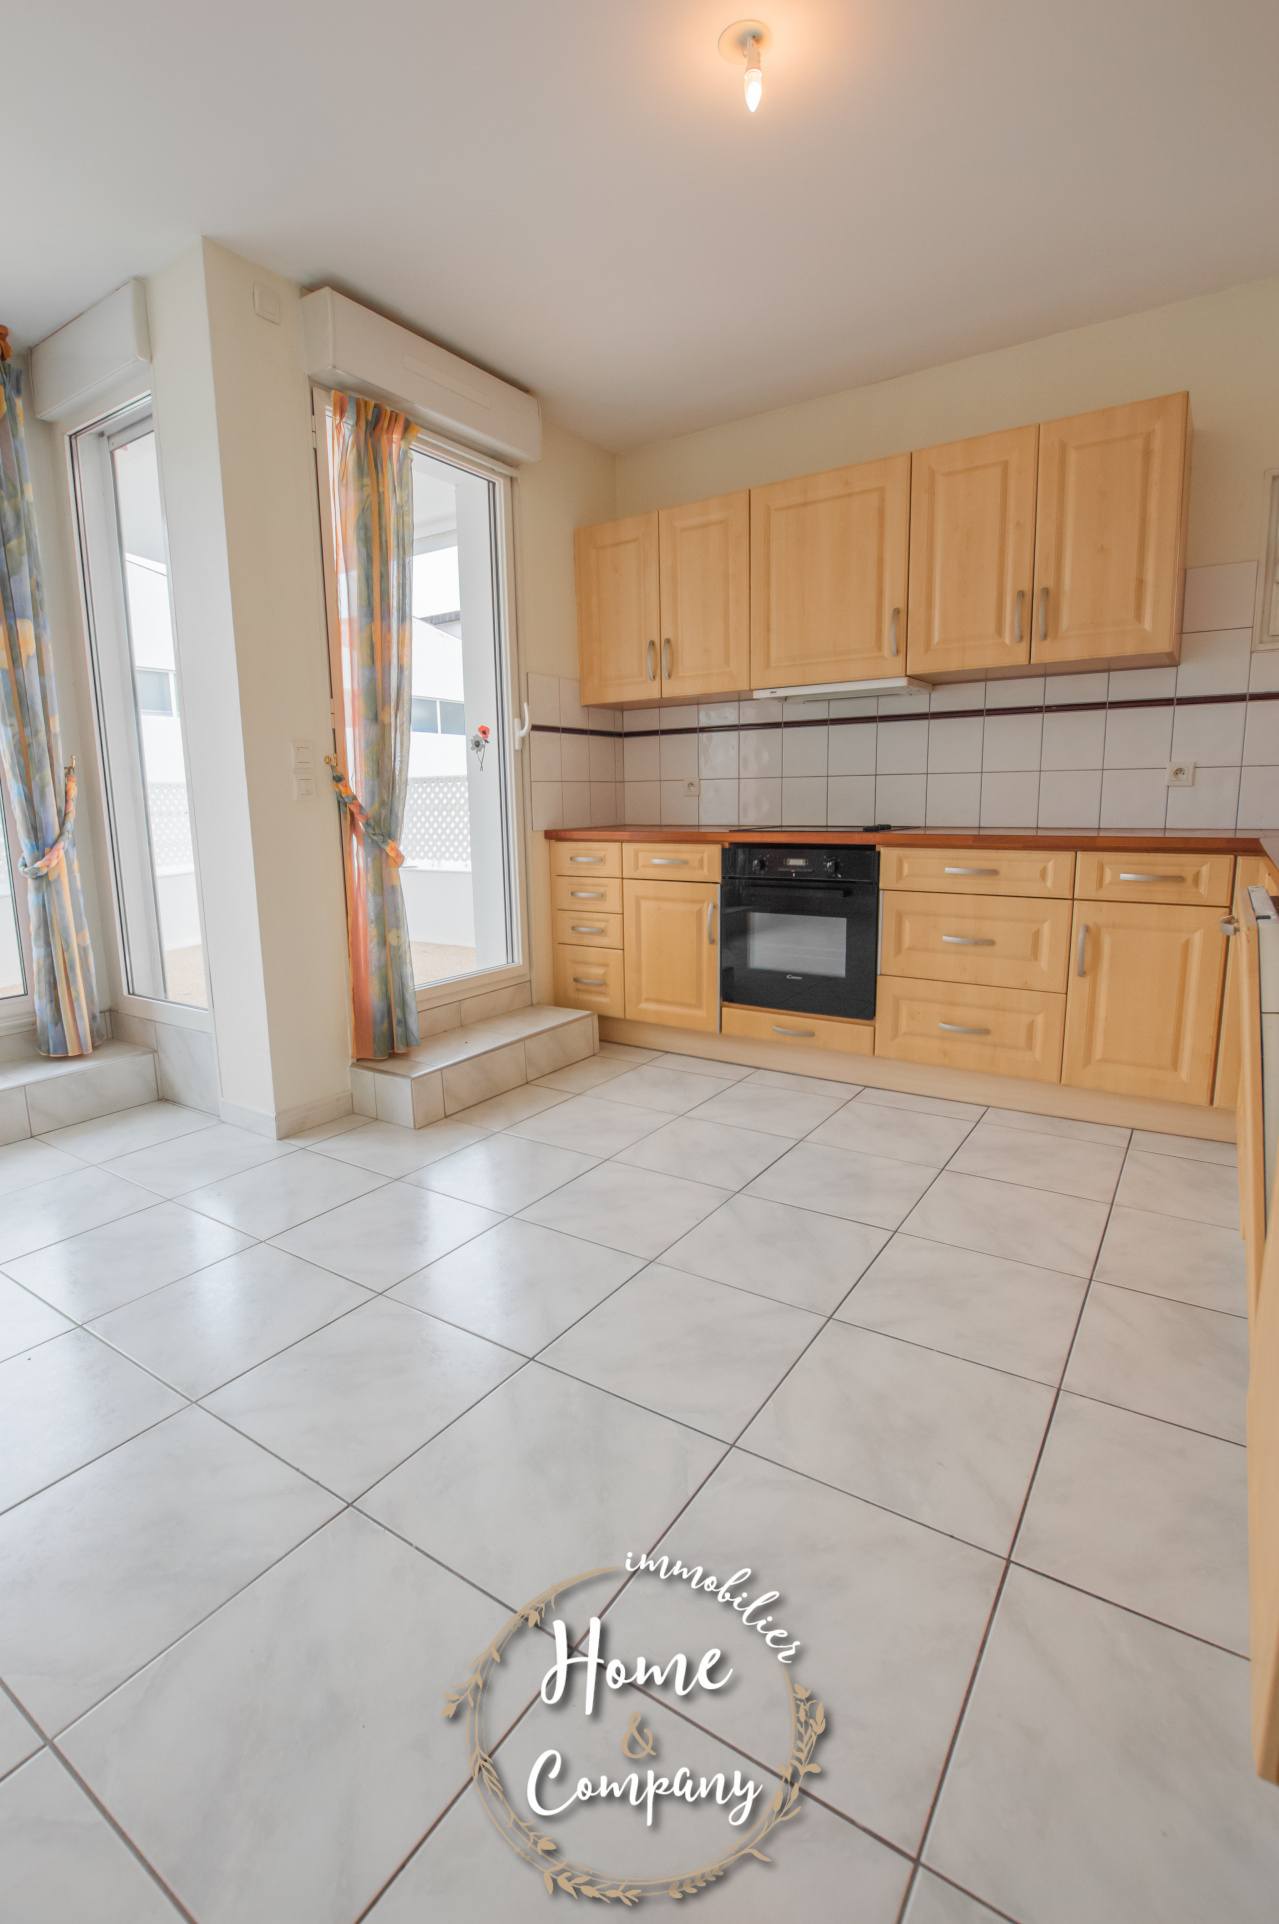 Image_6, Appartement, Royan, ref :95